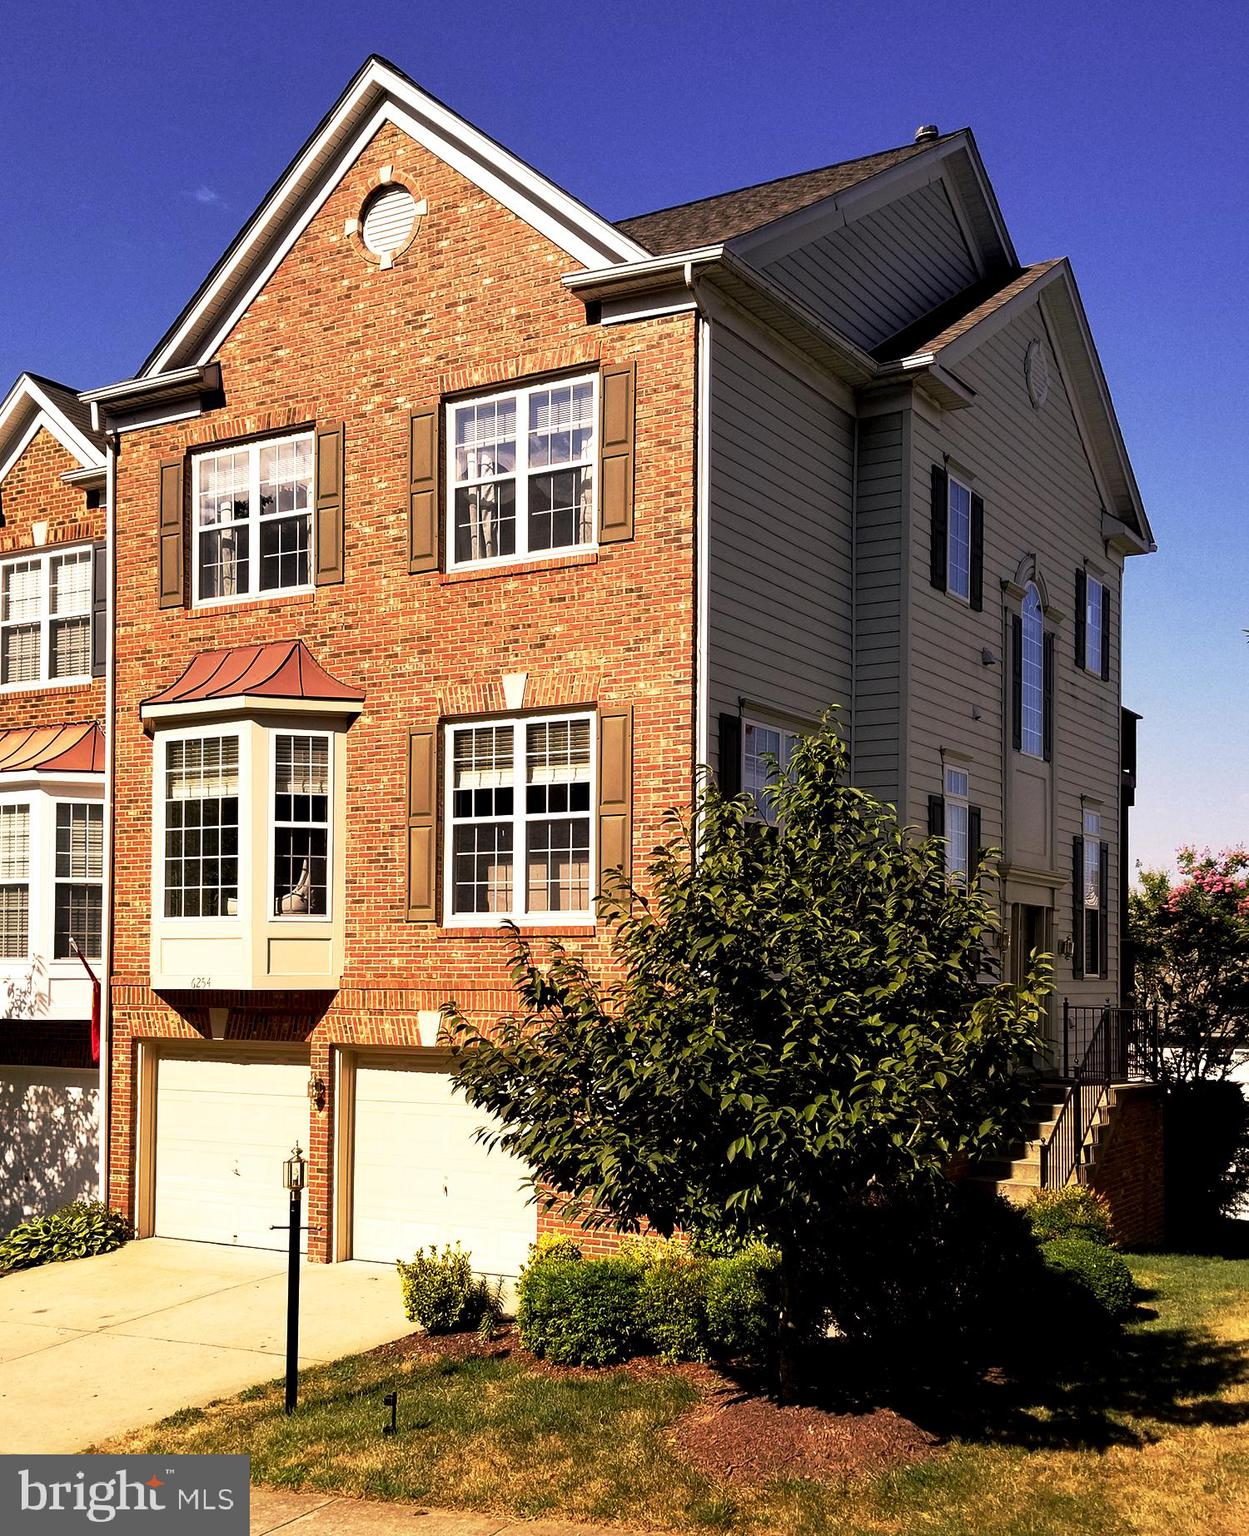 Please enjoy this 4 bedroom, 3 1/2 bathroom, 2620 sq.ft. end unit townhouse for sale in the sought-after Overlook community in Alexandria, Virginia.  The quality and scope of the upgrades throughout this house, both inside and out, present a rarely-found buying opportunity in Overlook for a fully move-in ready home with high-end finishes and features to enhance the new homeowner's use and enjoyment. The upgrades and appointments to this house are present in every room and every view within.  A focus on the details, both big and small, is apparent throughout. An eye-pleasing color palette throughout the house will compliment any design style preferred by the new homeowner. Once inside, the house opens to the Dining Room and Living Room, with a 10 foot ceiling that provides a feeling of both space and light. The open circular candelabra and sconces in the Dining Room create a dramatic focal point for the new homeowner to enjoy every time they walk into their home. The kitchen has a cook's layout that is ready for entertaining, with brushed stainless steel appliances, granite counters, ample prep room, and cherry cabinets. The kitchen peninsula is sized for eating or watching the cook at work, with room for three counter stools. Two walls of windows, including a bay window, provide pleasing natural light for the entire kitchen area. The kitchen faces a seating area with a gas fireplace. The space in front of the bay window is sized to allow a table for informal dining under a polished nickel candelabra. The main living also has French doors leading to a sunroom, which opens to one of the three decks. The sunroom and deck overlook a row of Crepe Myrtle trees in the common area behind the house, which provide three season of color. The main living level also has an office, with a six panel glass door, two walls of windows, and the same high ceiling. A half bath is also located on this level, with an upgraded sink fixture, light, and mirror. The Master Bedroom suite is la